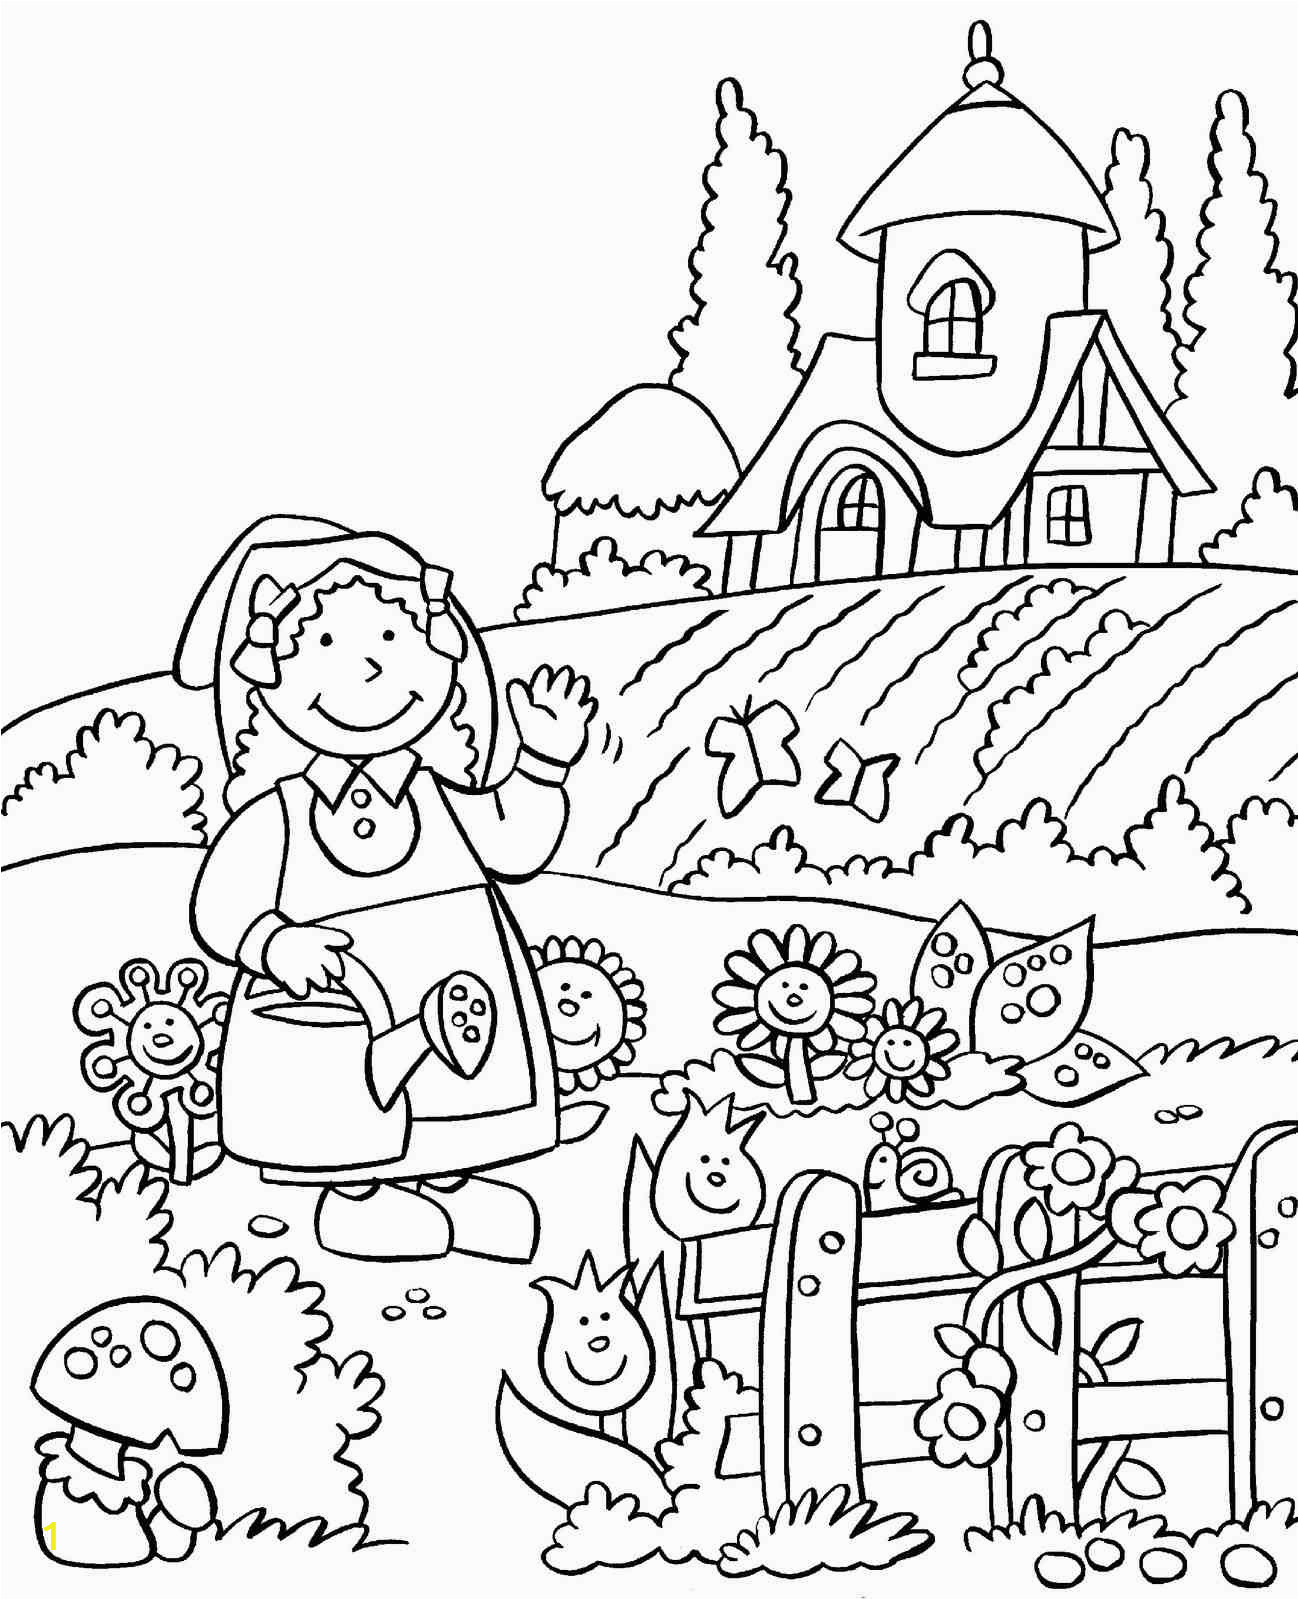 horticulture coloring pages flower garden coloring pages to and print for free coloring horticulture pages